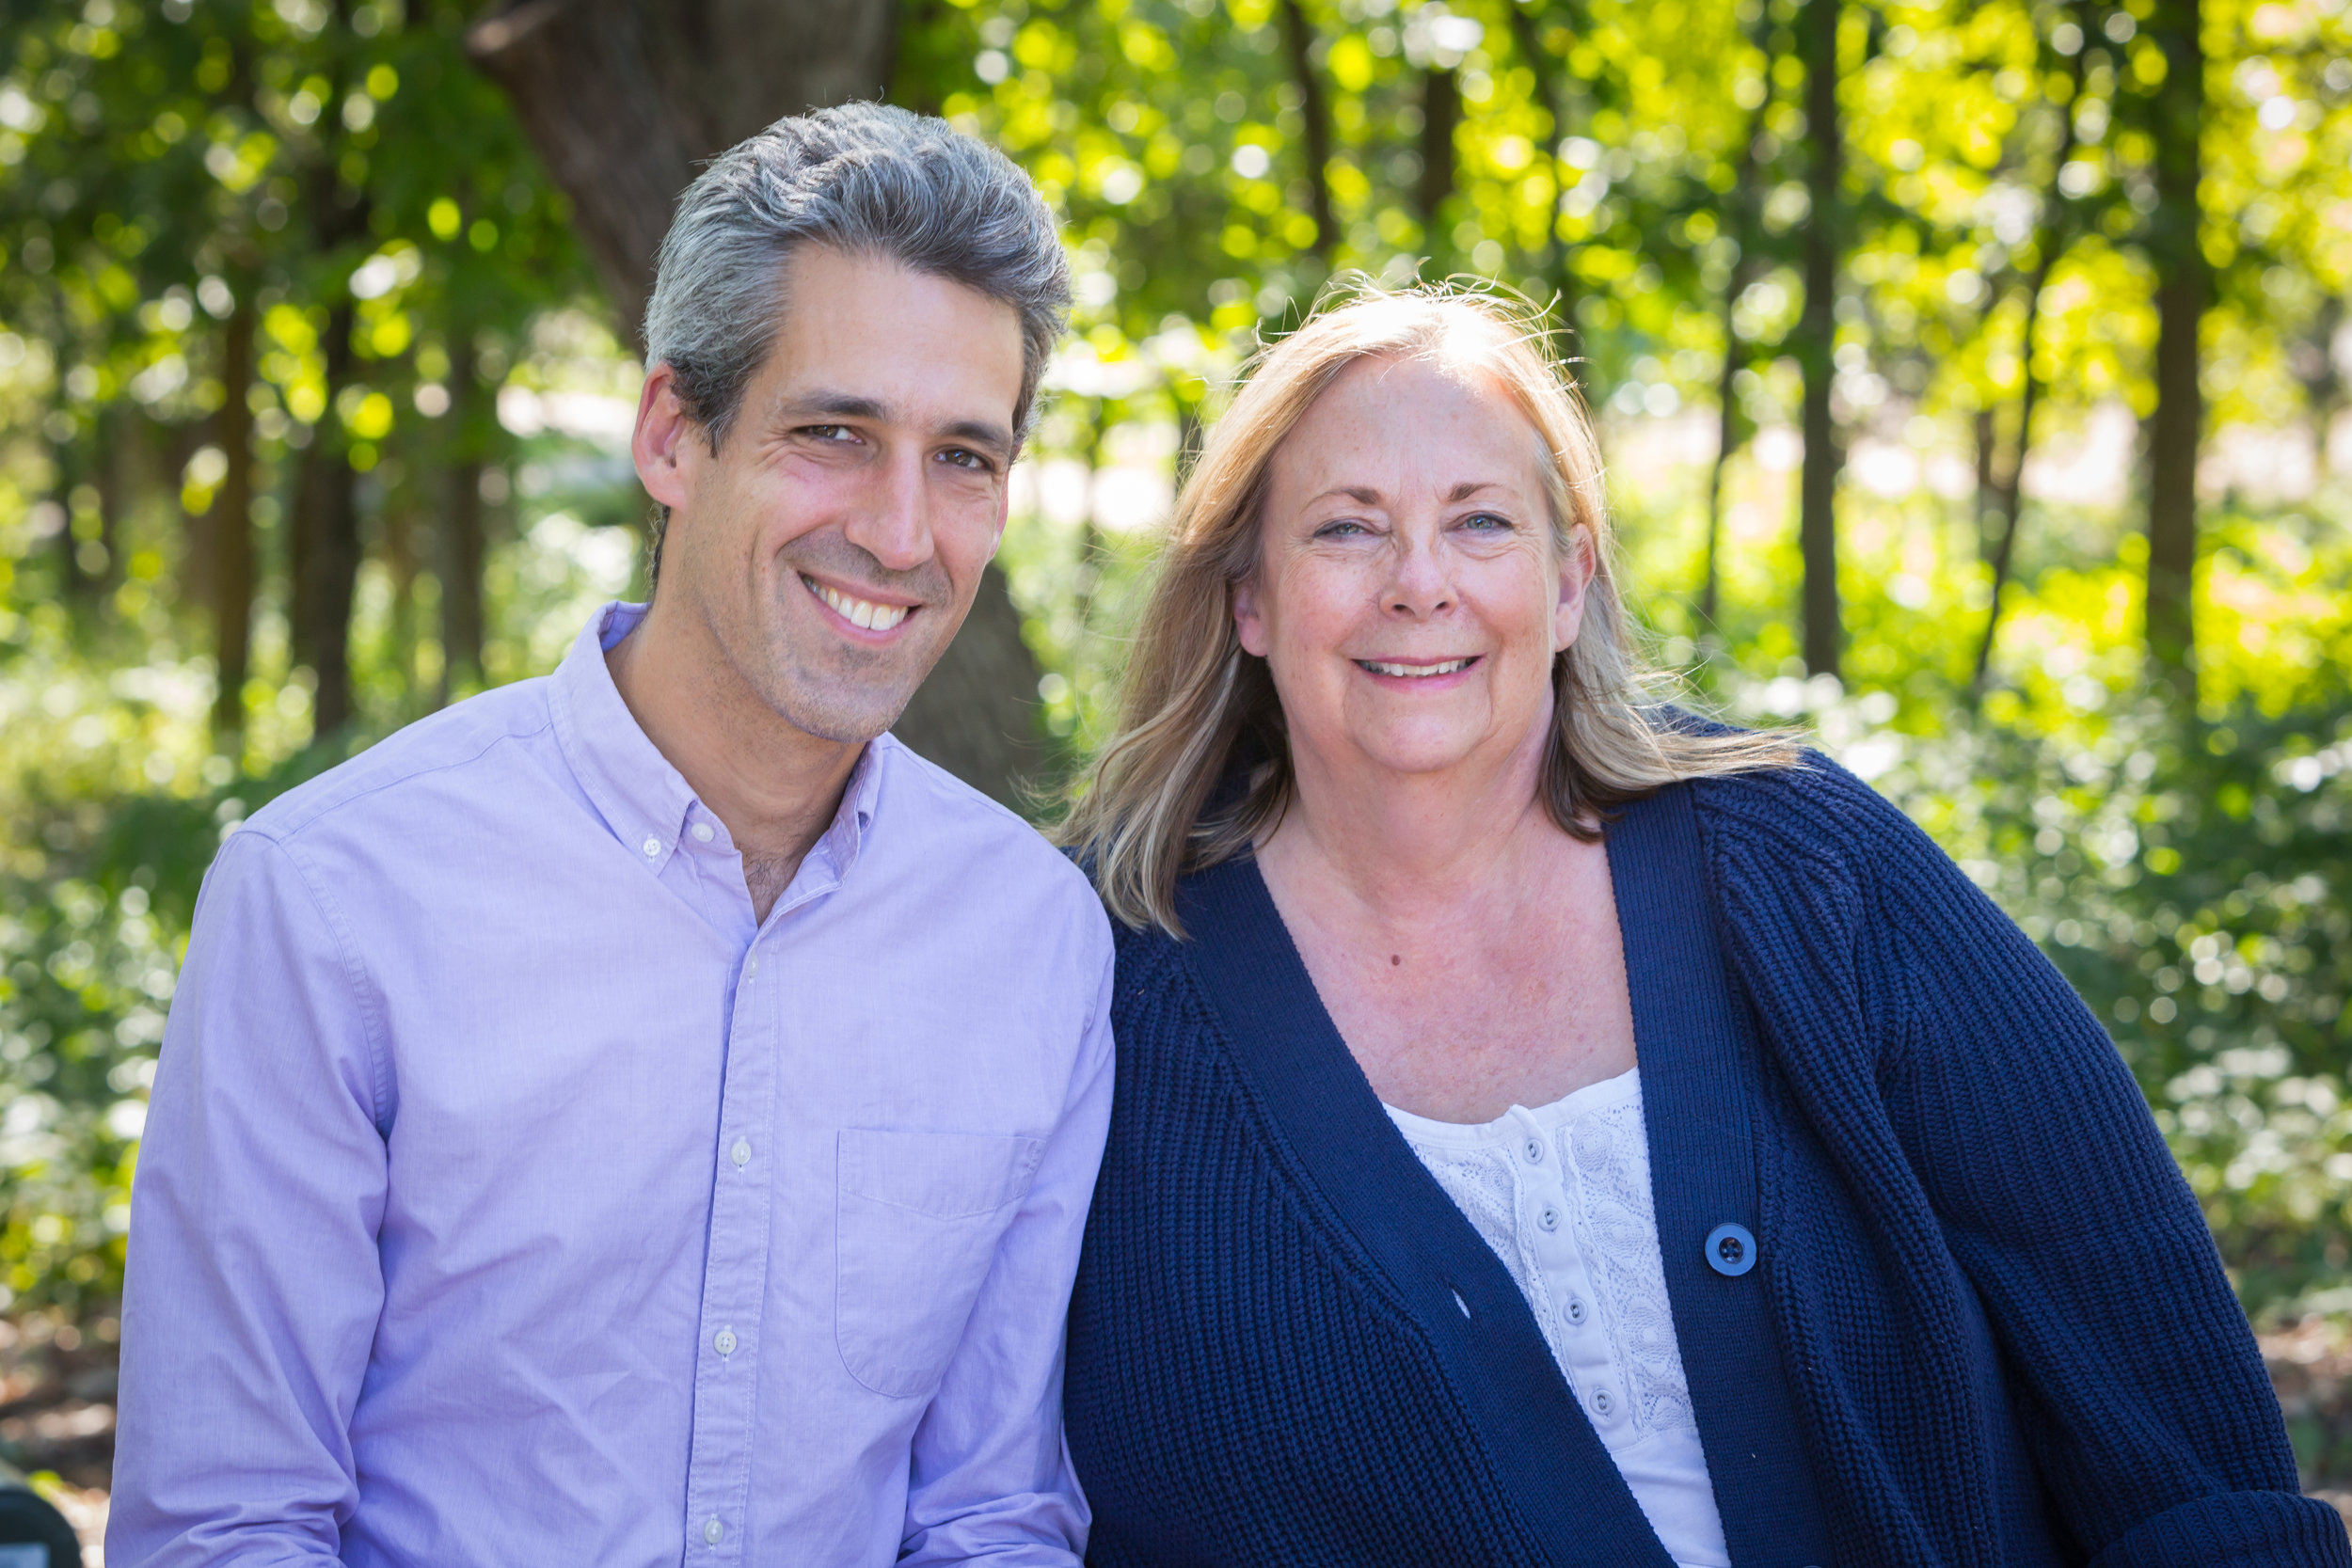 State Senator Daniel Biss Endorses Nancy Zettler for State Senate District 33